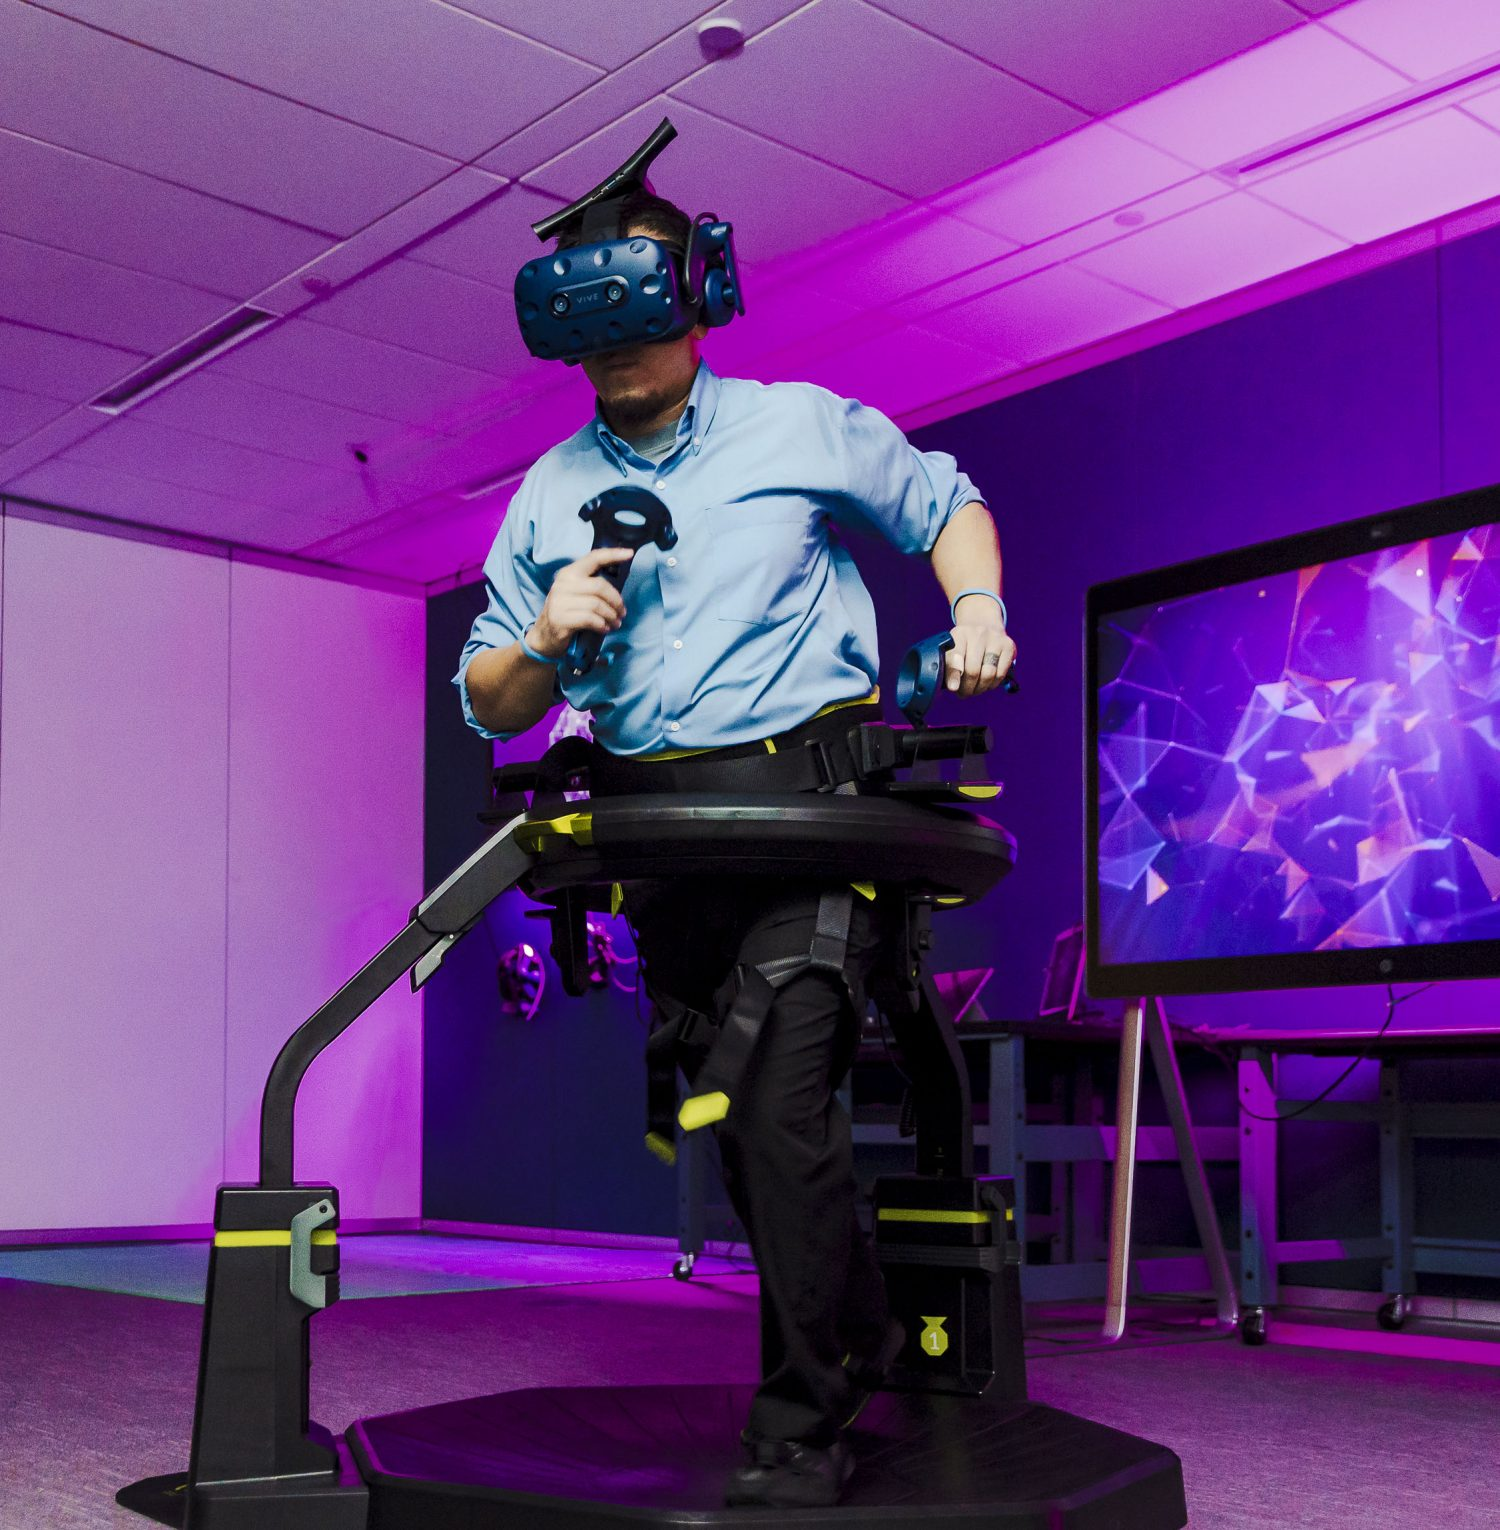 Safety training gets a dose of virtual reality